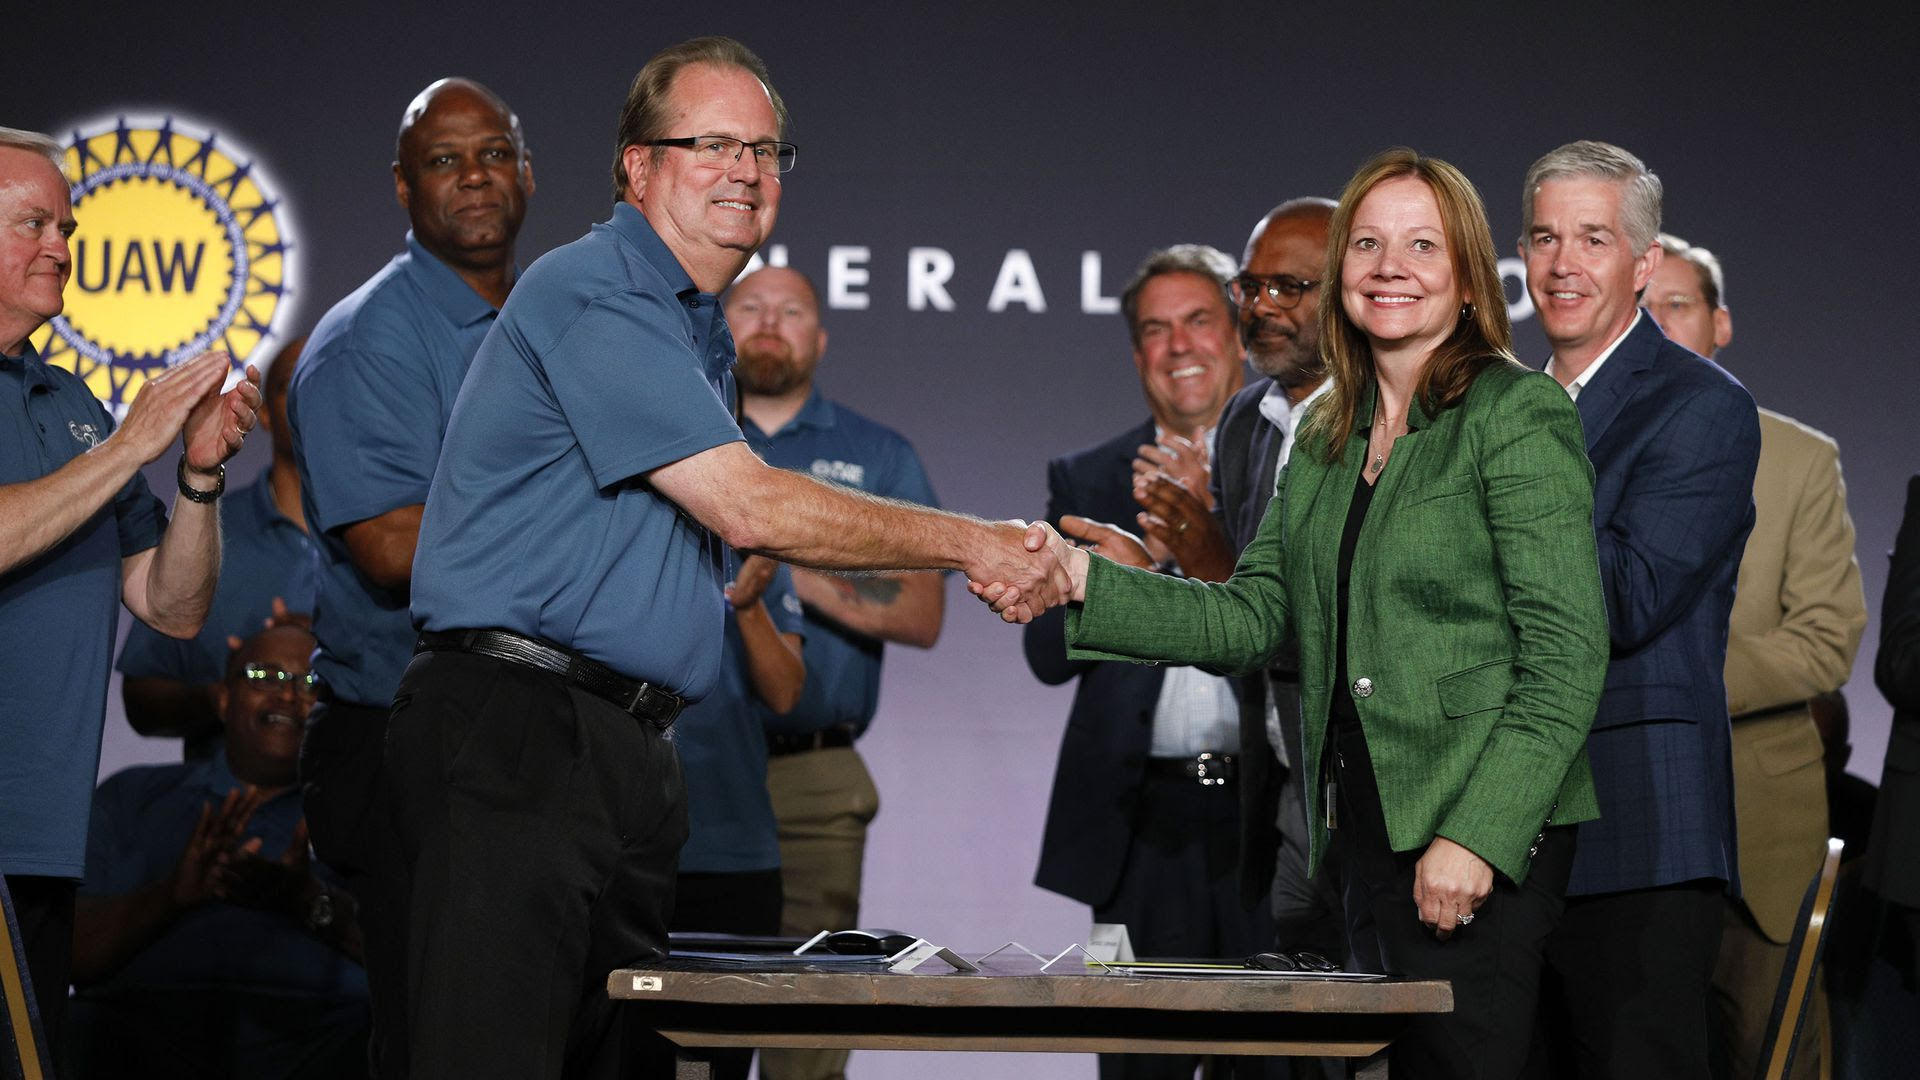 GM CEO Mary Barra and UAW President Gary Jones open the 2019 GM-UAW contract talks with the traditional ceremonial handshake.